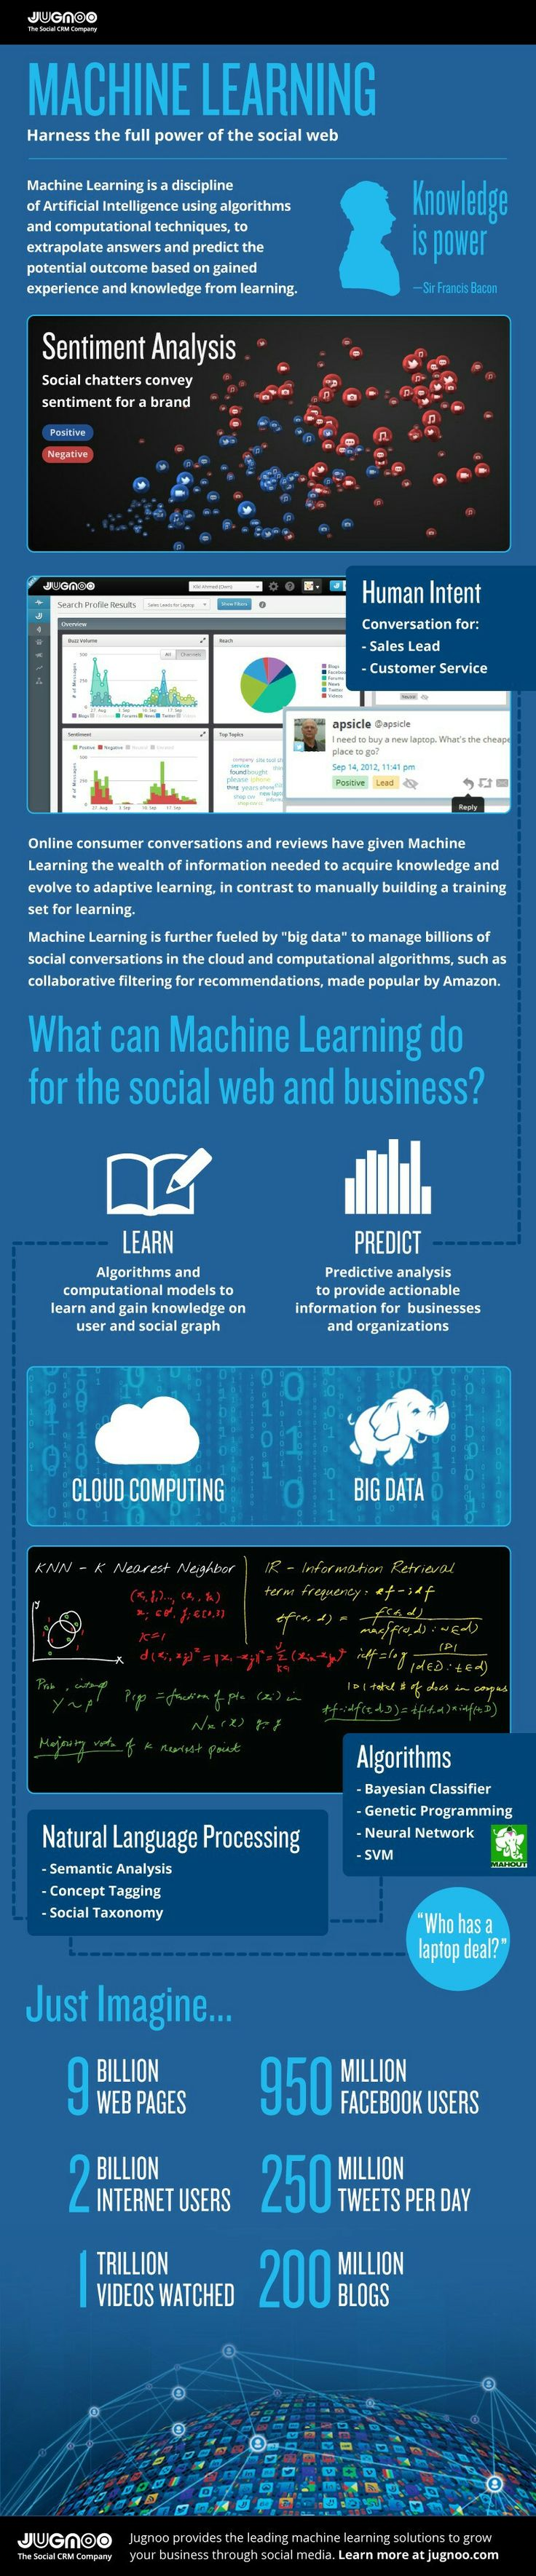 Machine Learning Harness The Full Power Of